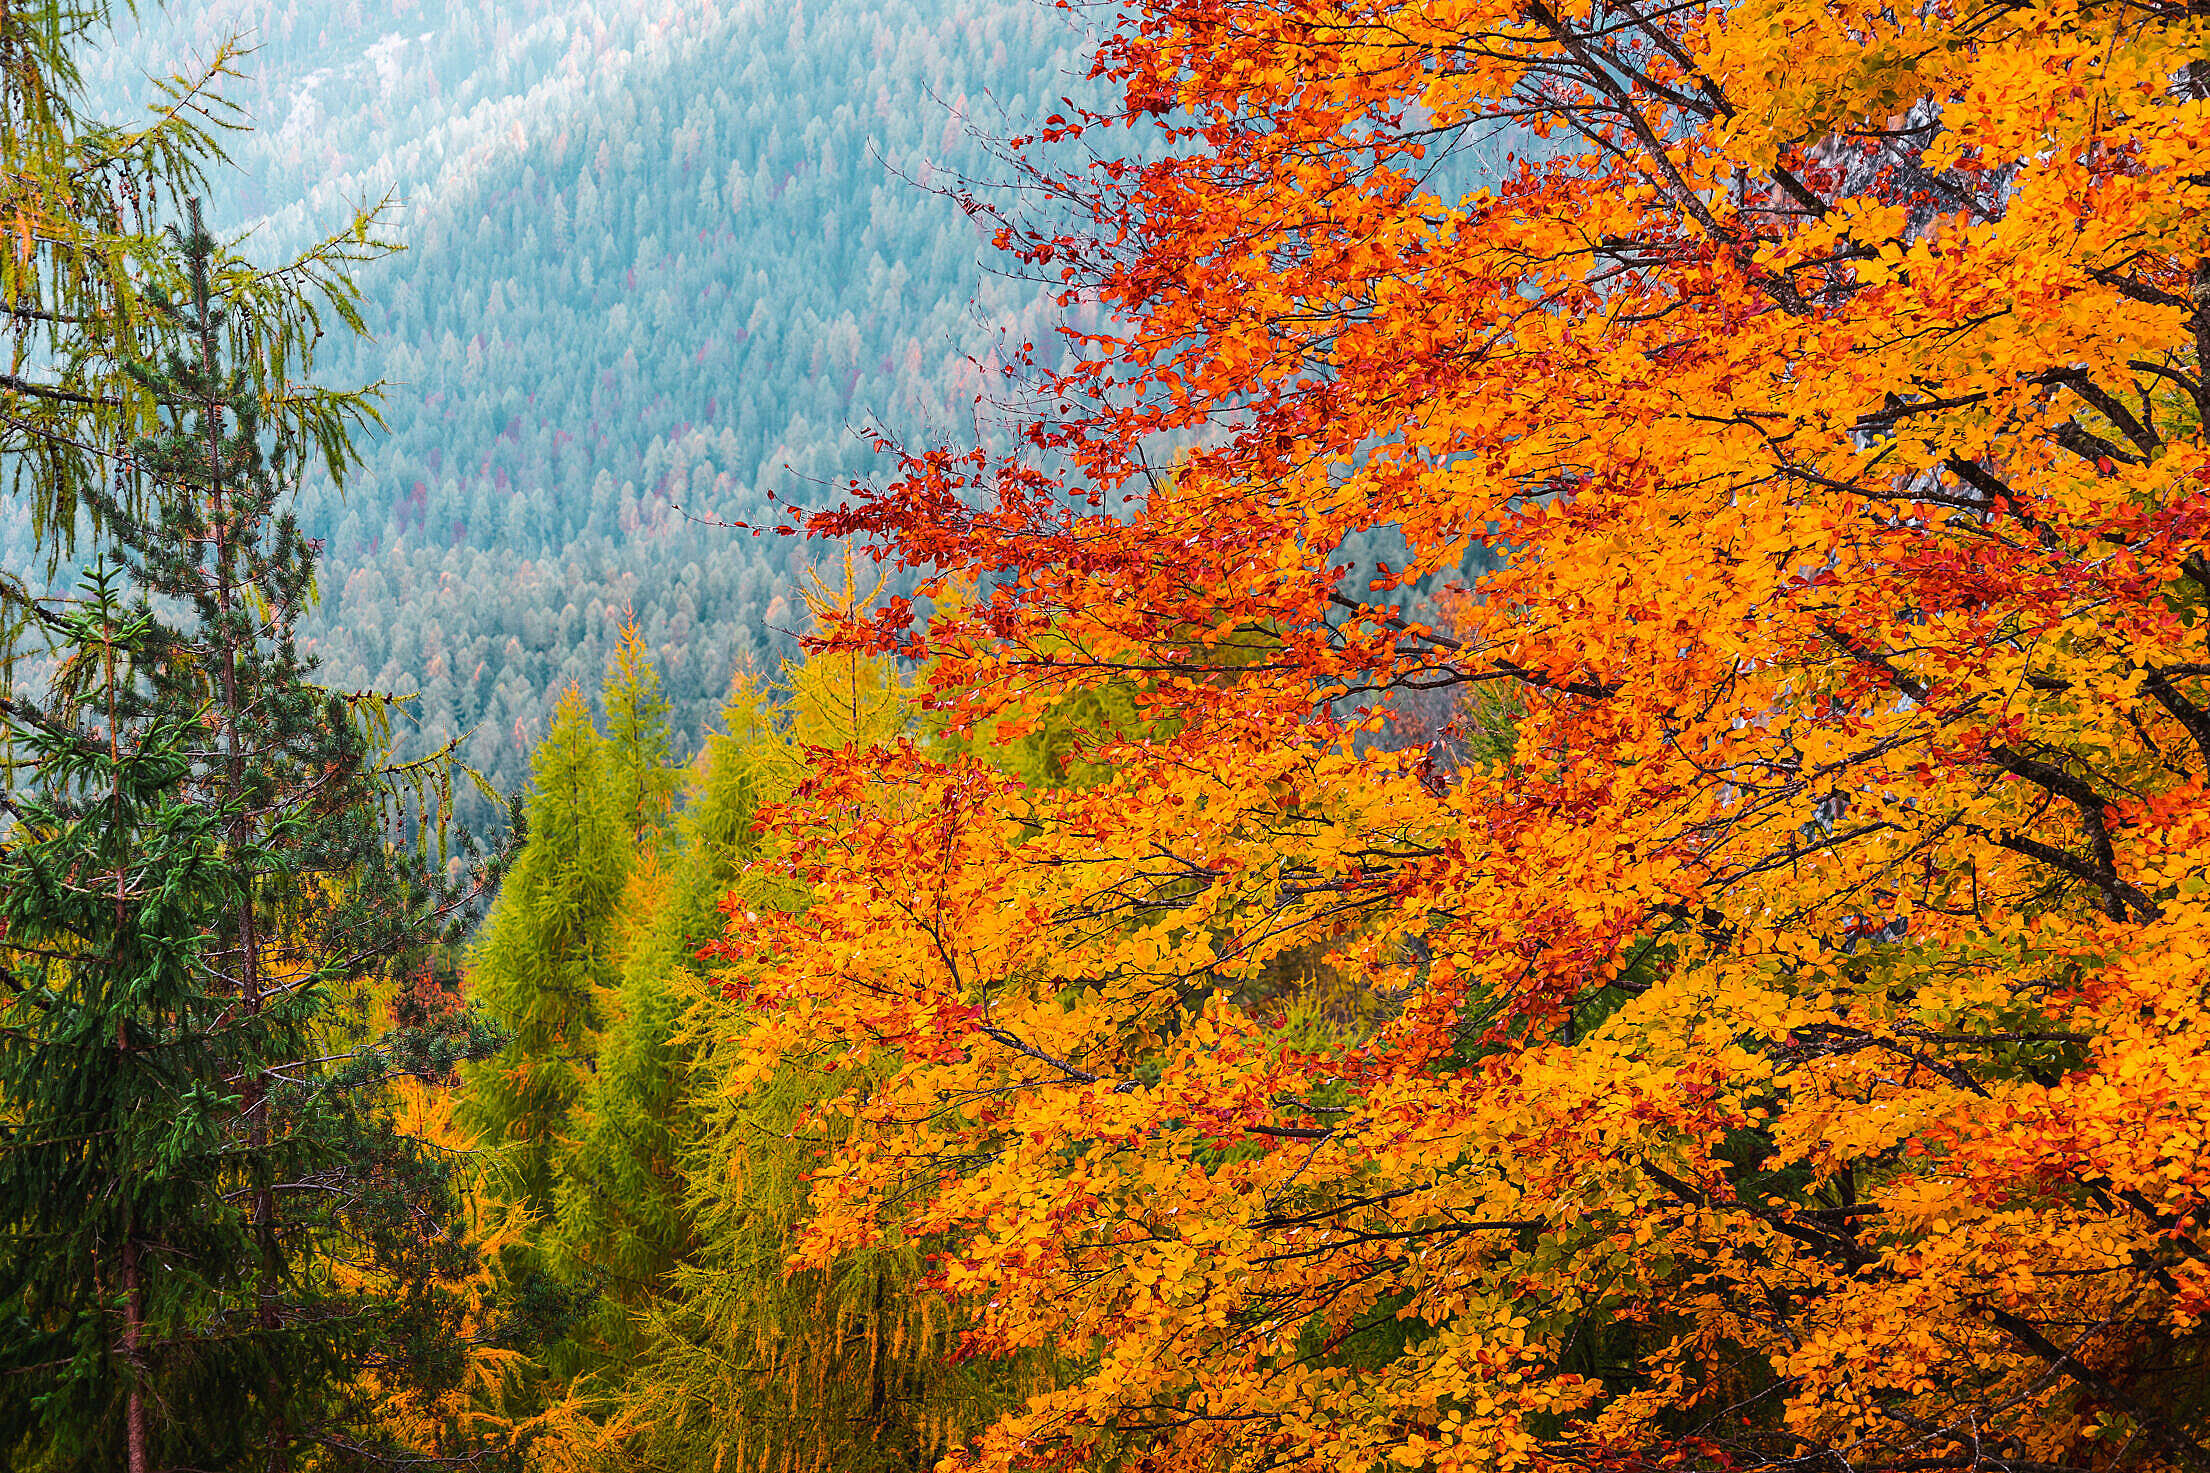 Fall Colors in Nature Free Stock Photo